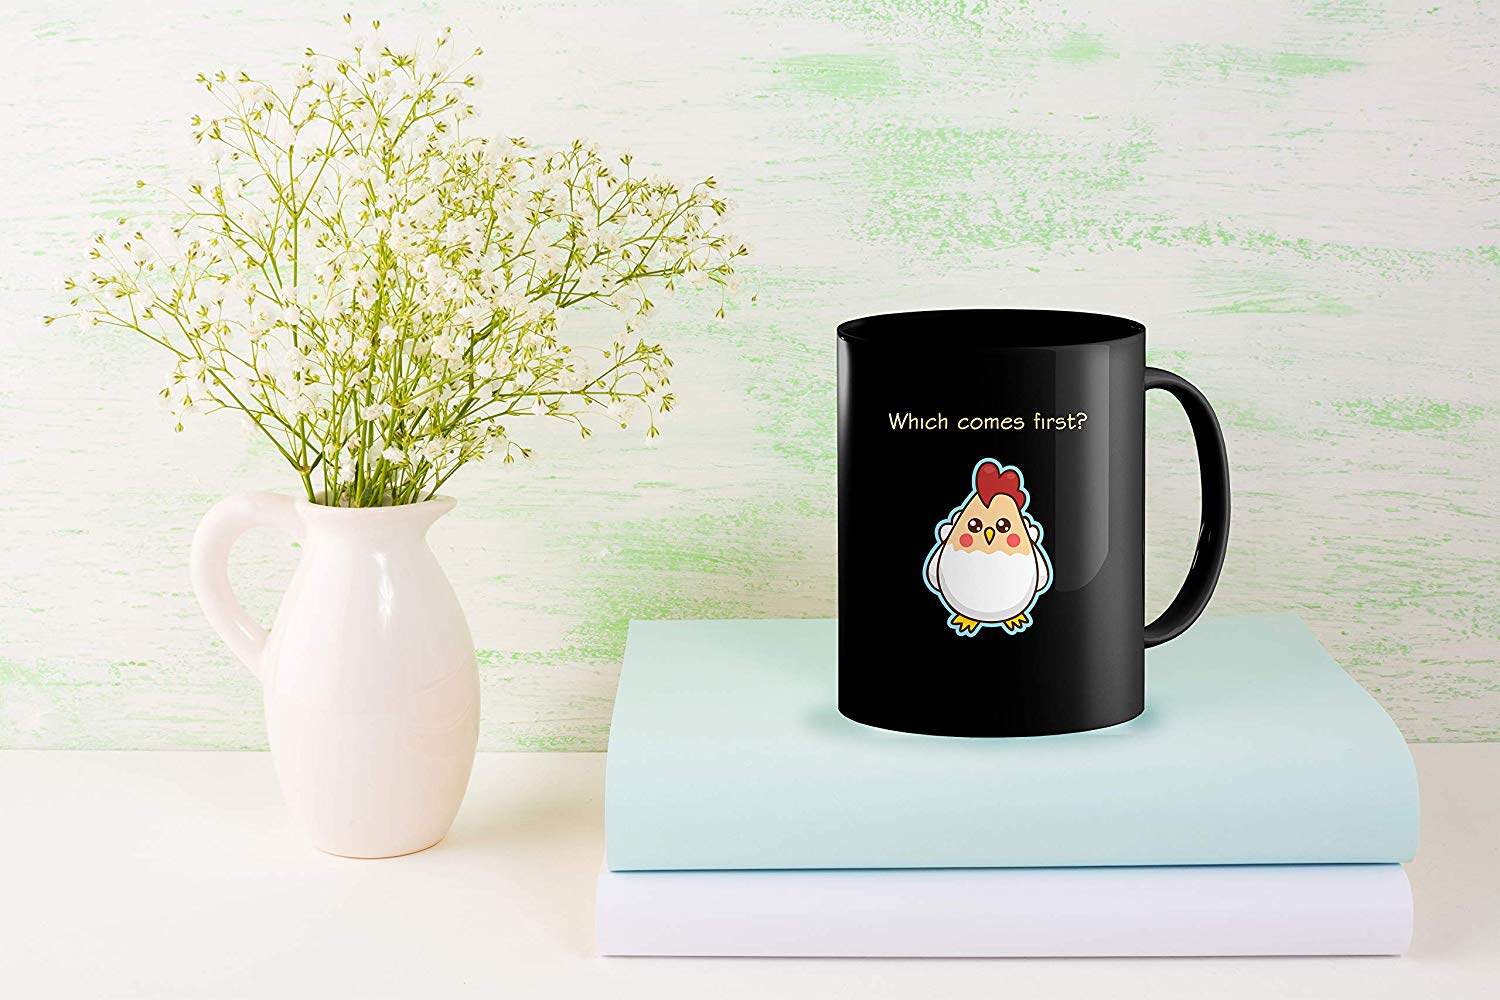 Heat Sensitive Color Changing Coffee Mug Funny Coffee Cup Which Comes First The Chicken Or The Egg Funny Gift Idea B07D1ZSXDJ 6